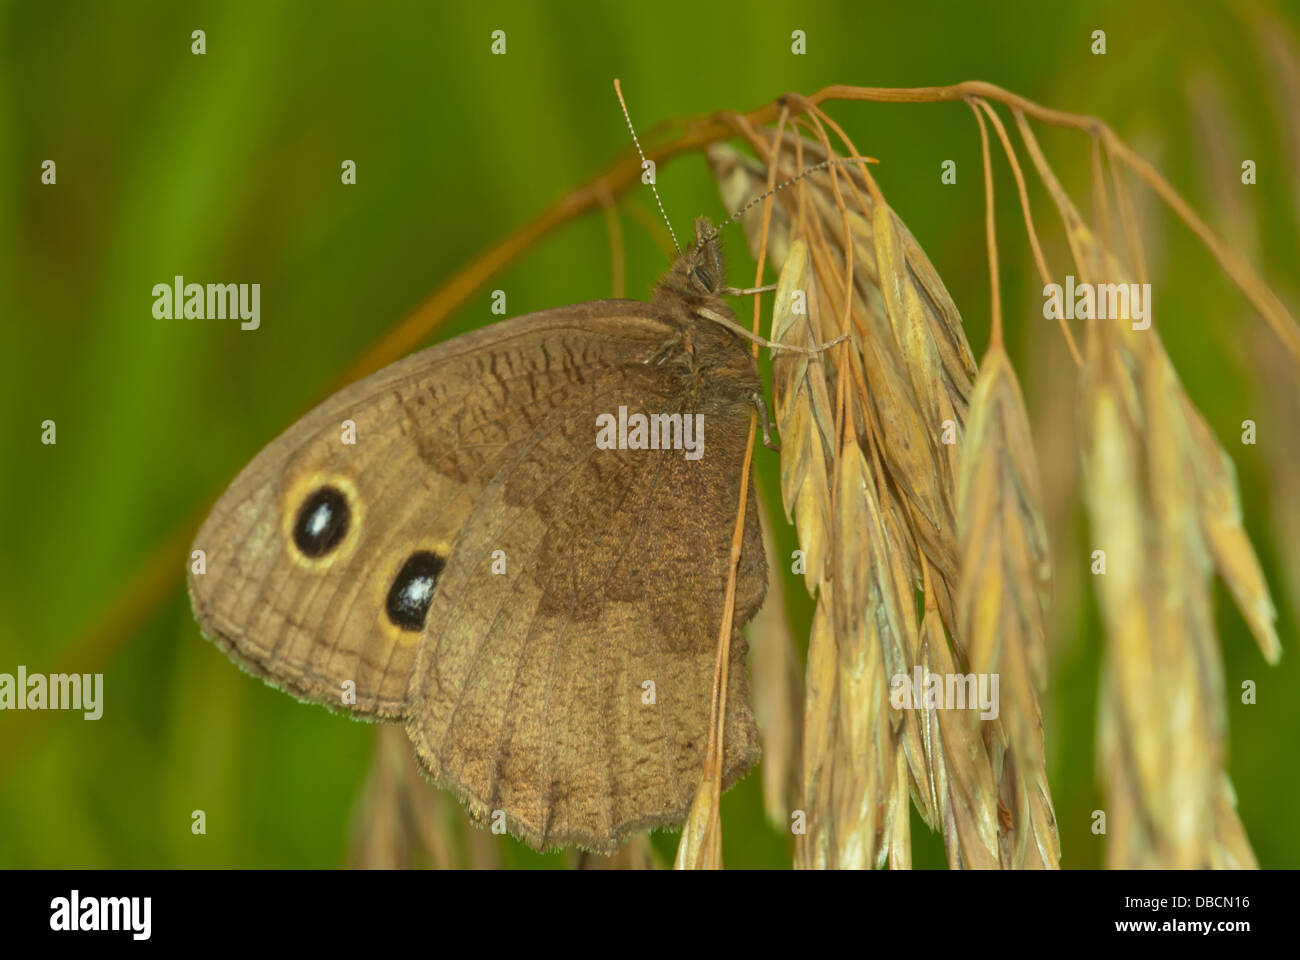 Common wood nymph butterfly (Cercyonis pegala) perched on a dried grass seedhead, Wagner Bog, Alberta - Stock Image